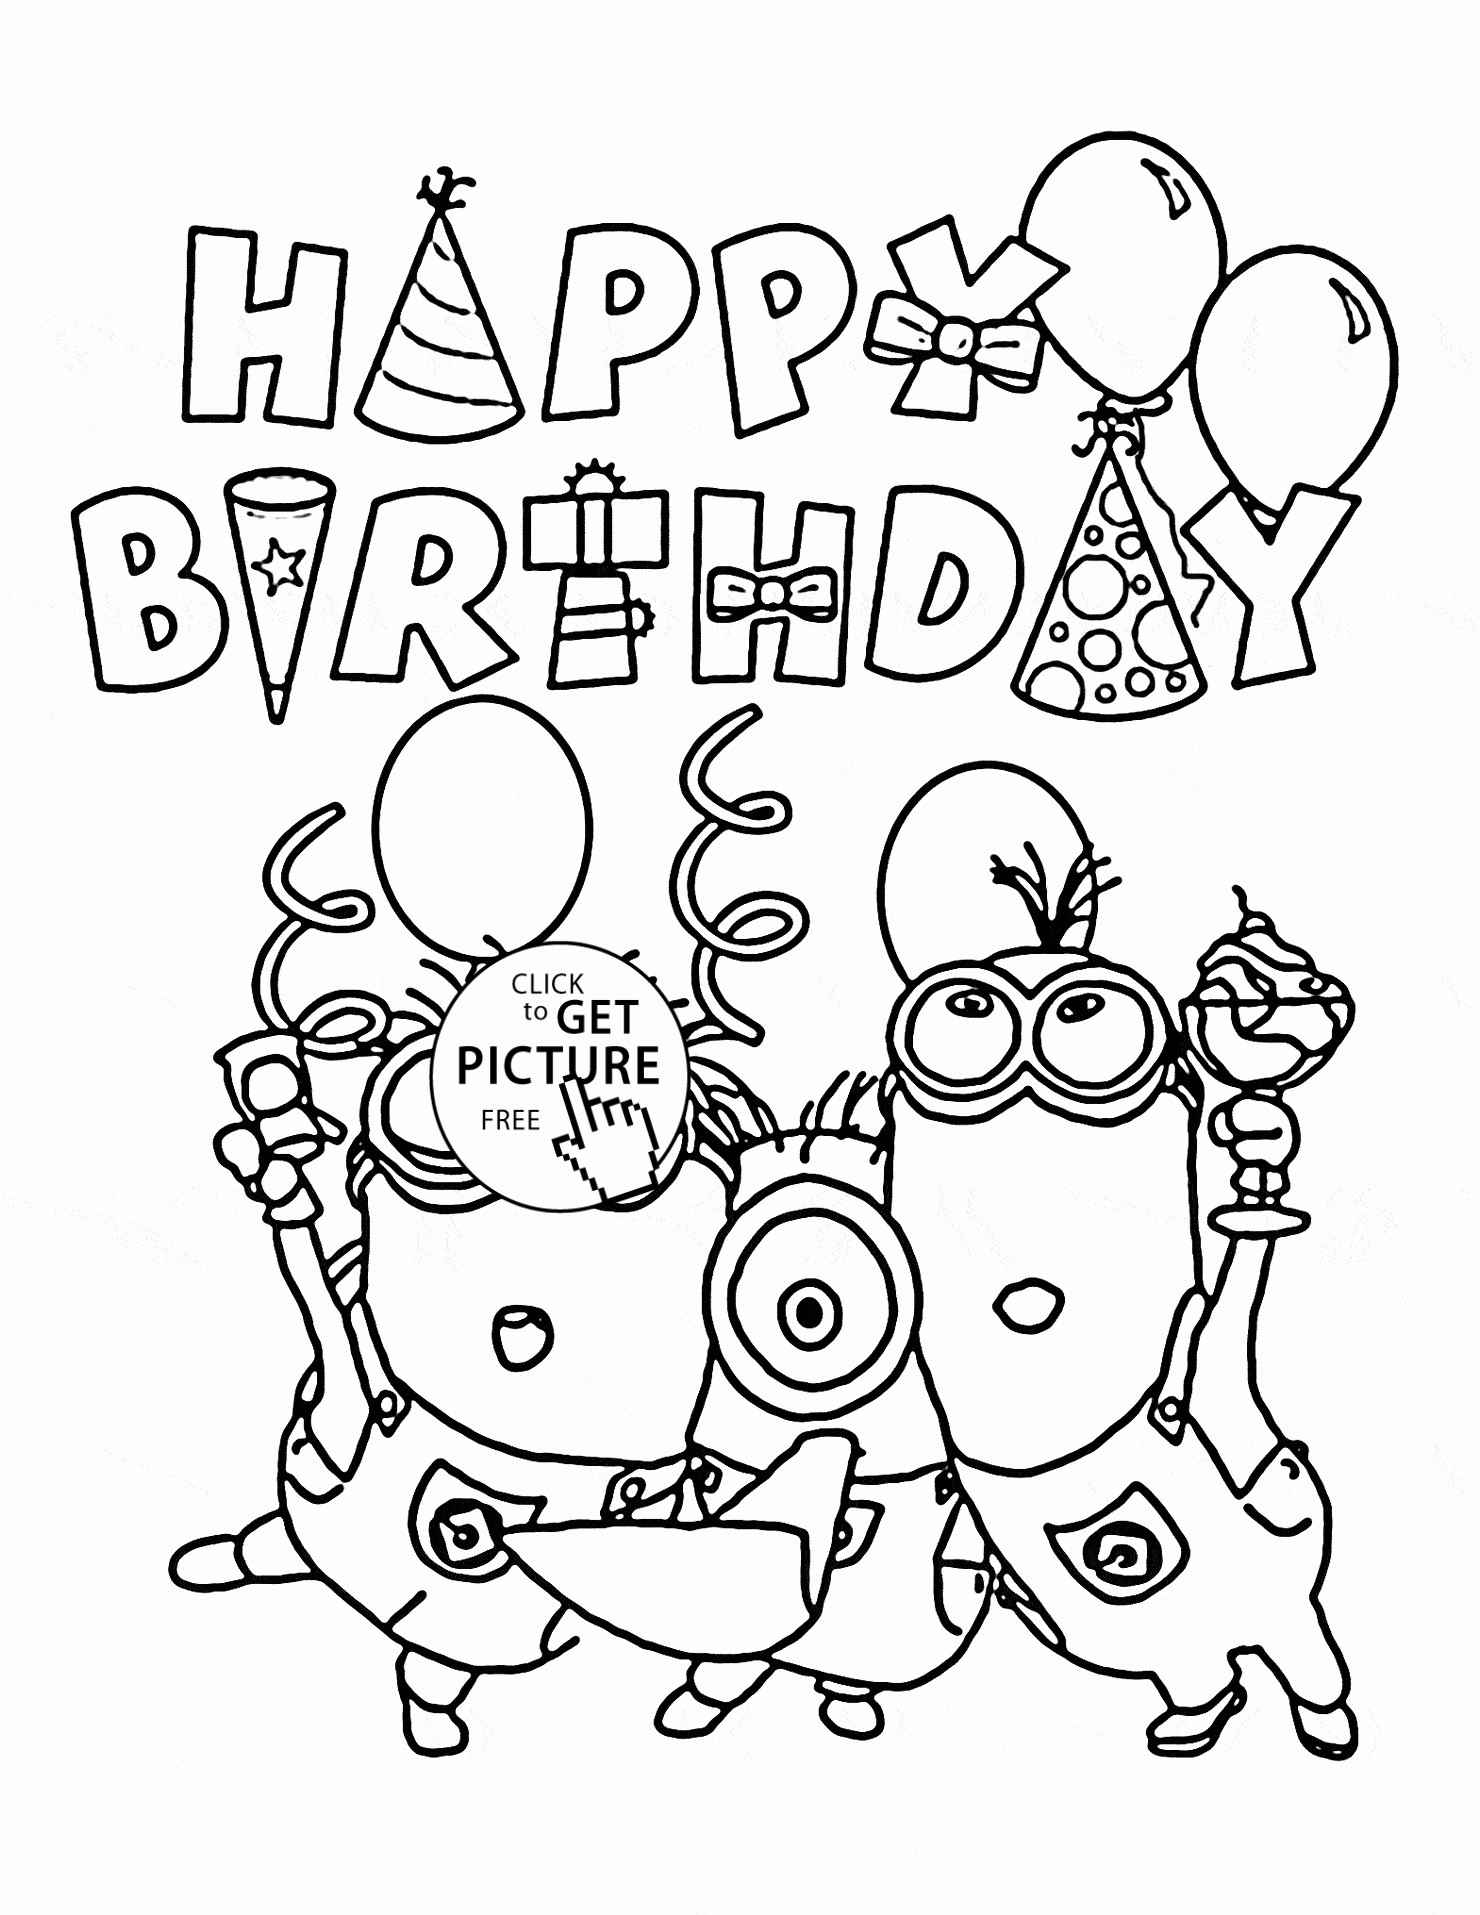 happy birthday colouring pages for dad happy birthday daddy coloring pages coloring home for colouring birthday pages dad happy